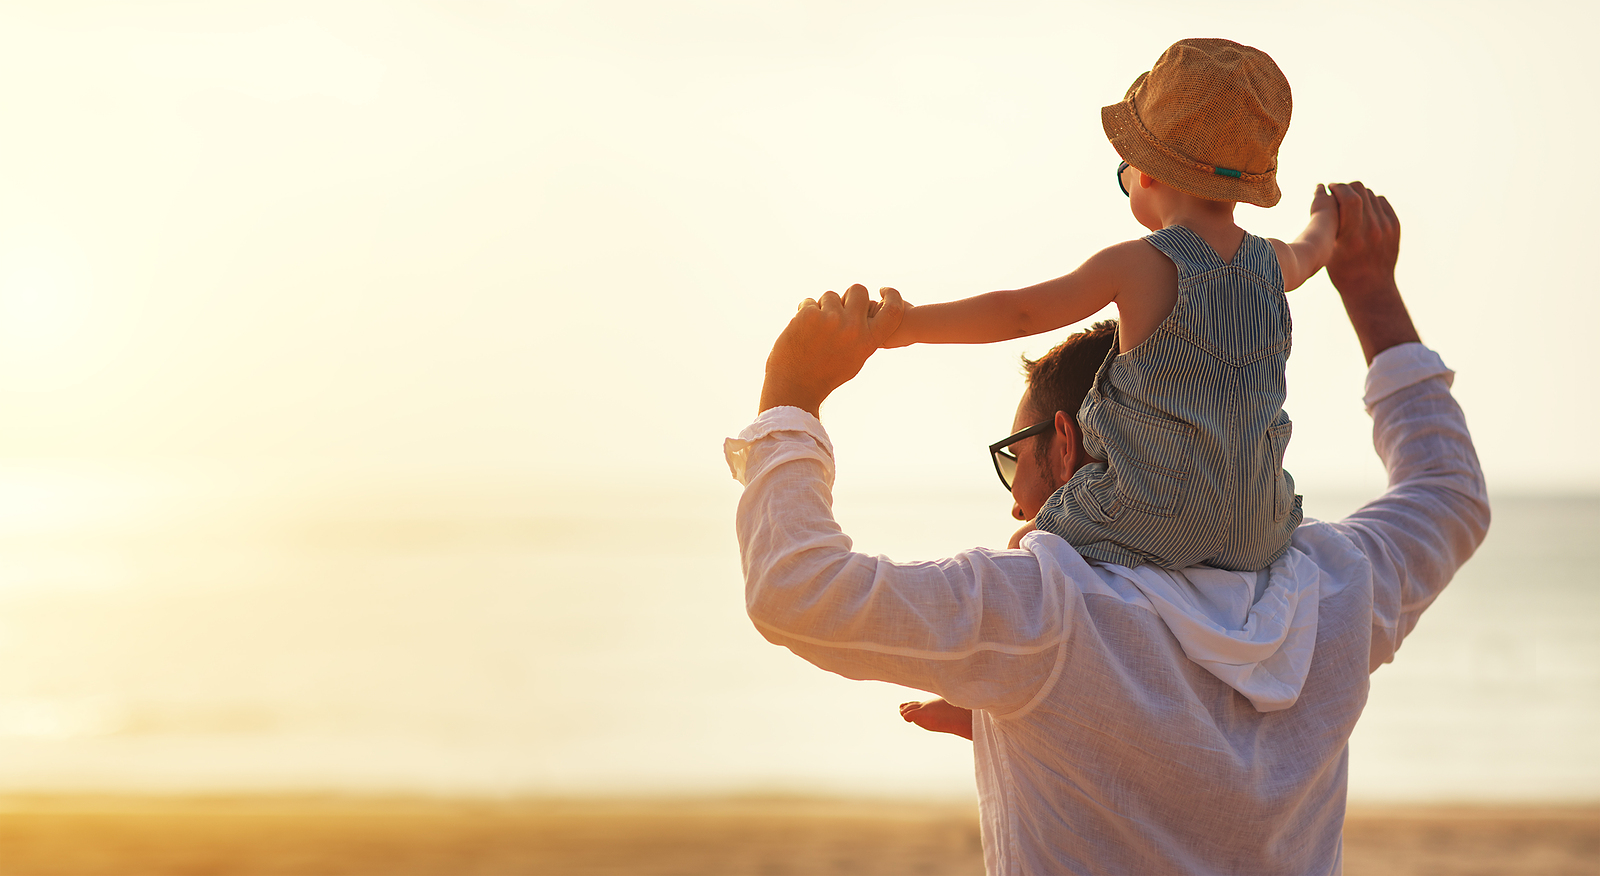 Average Age Of New Dads Almost 4 Years Older Than in Past